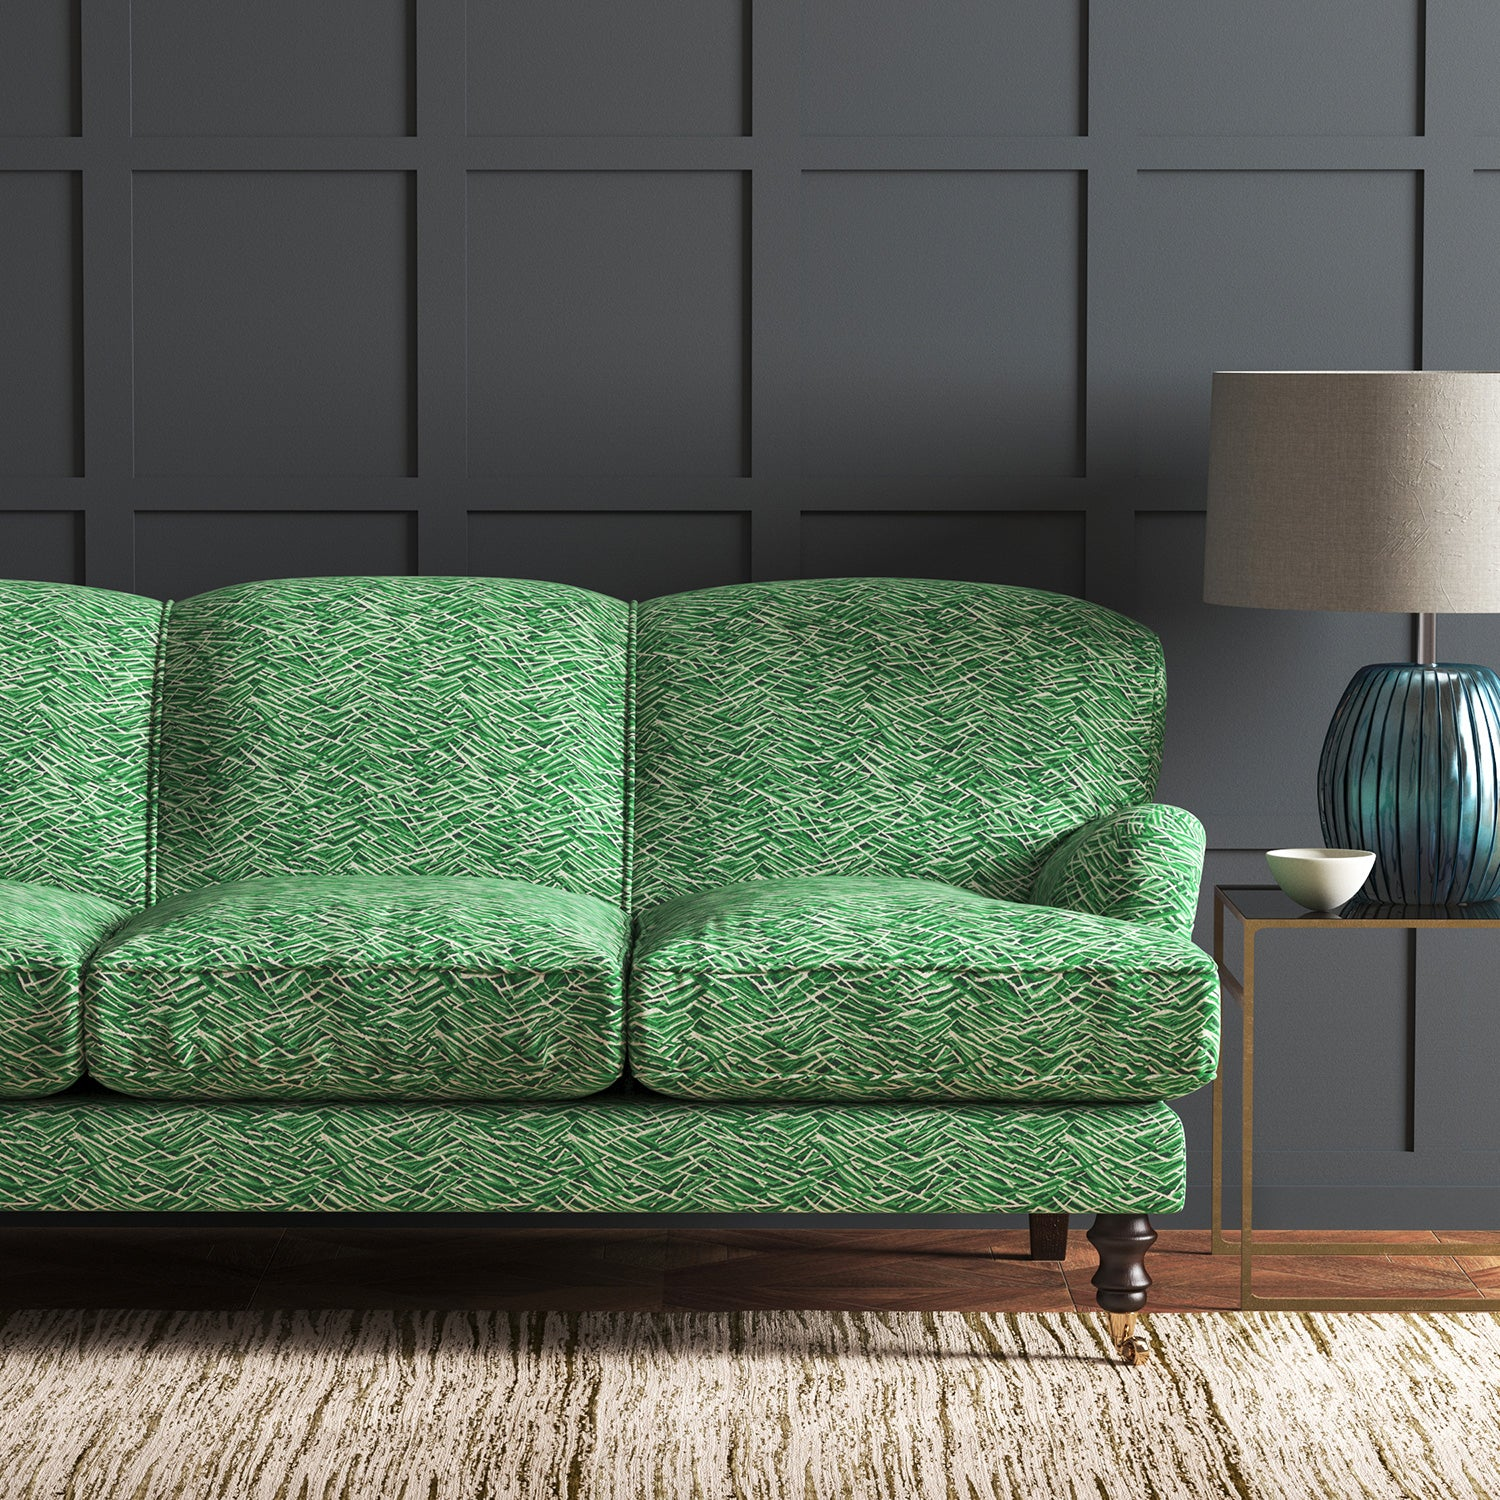 Sofa in a green velvet sofa with stain resistant finish and abstract design